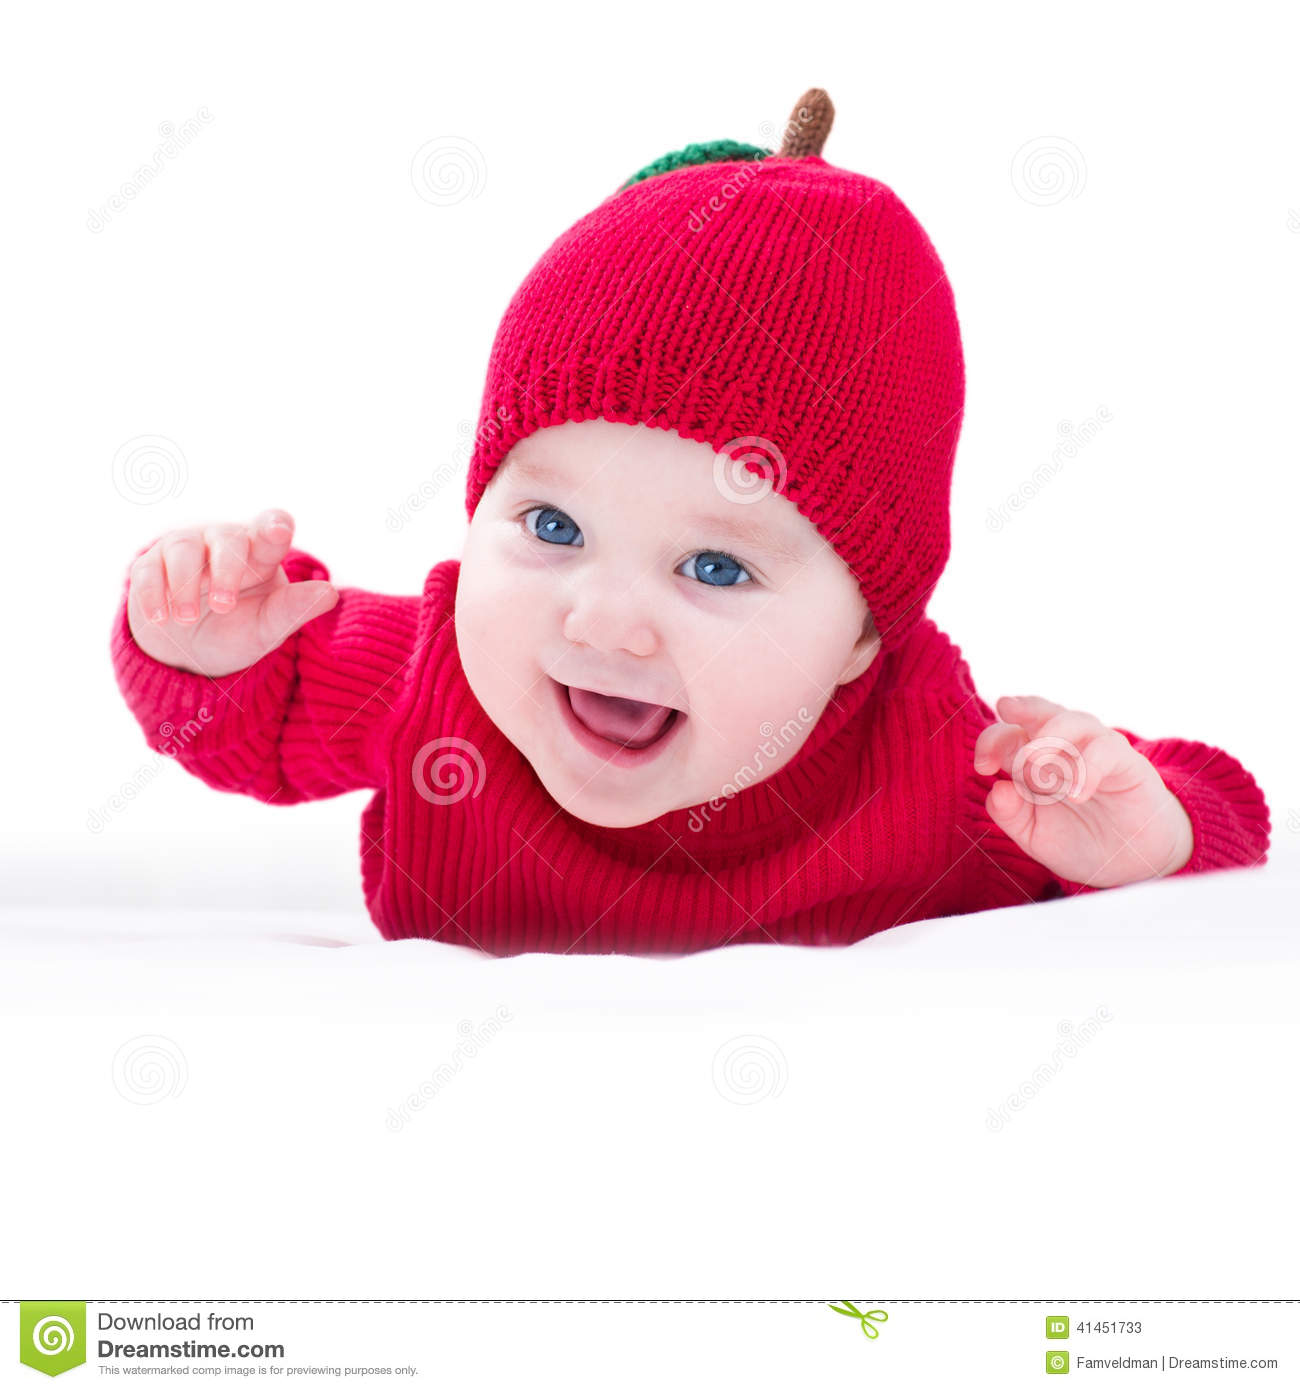 d94d85129 Funny Laughing Baby Wearing Knitted Red Apple Hat Stock Image ...